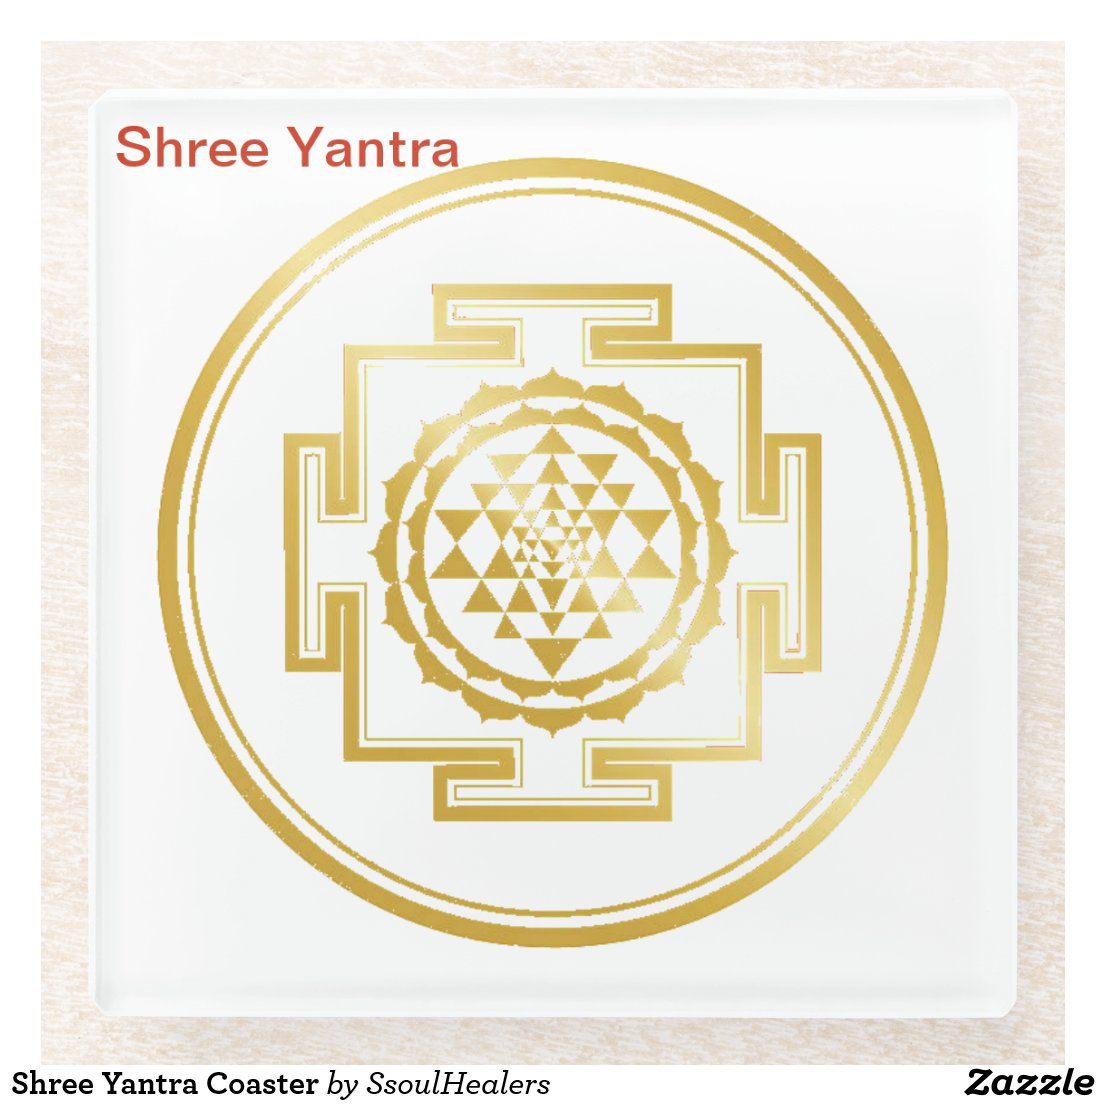 Shree Yantra Coaster